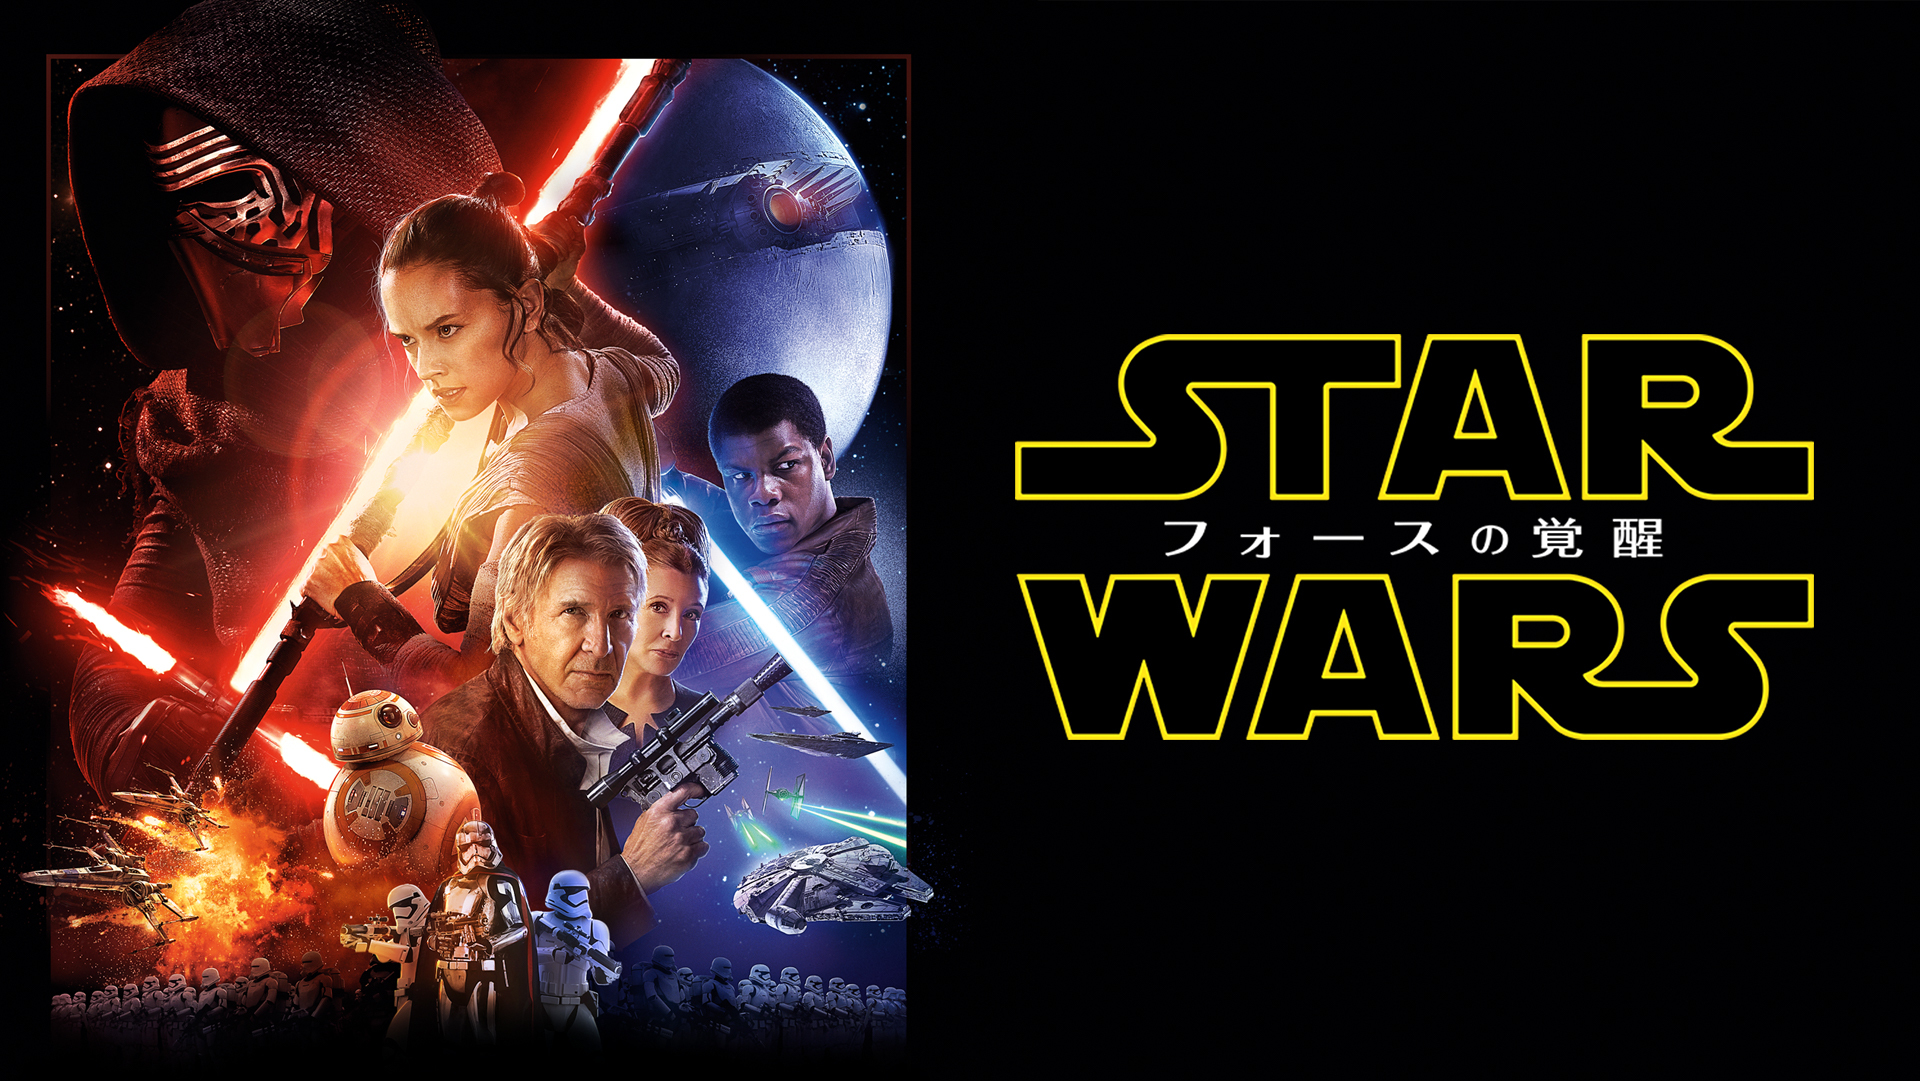 (C)2016 & TM Lucasfilm Ltd. All Rights Reserved.